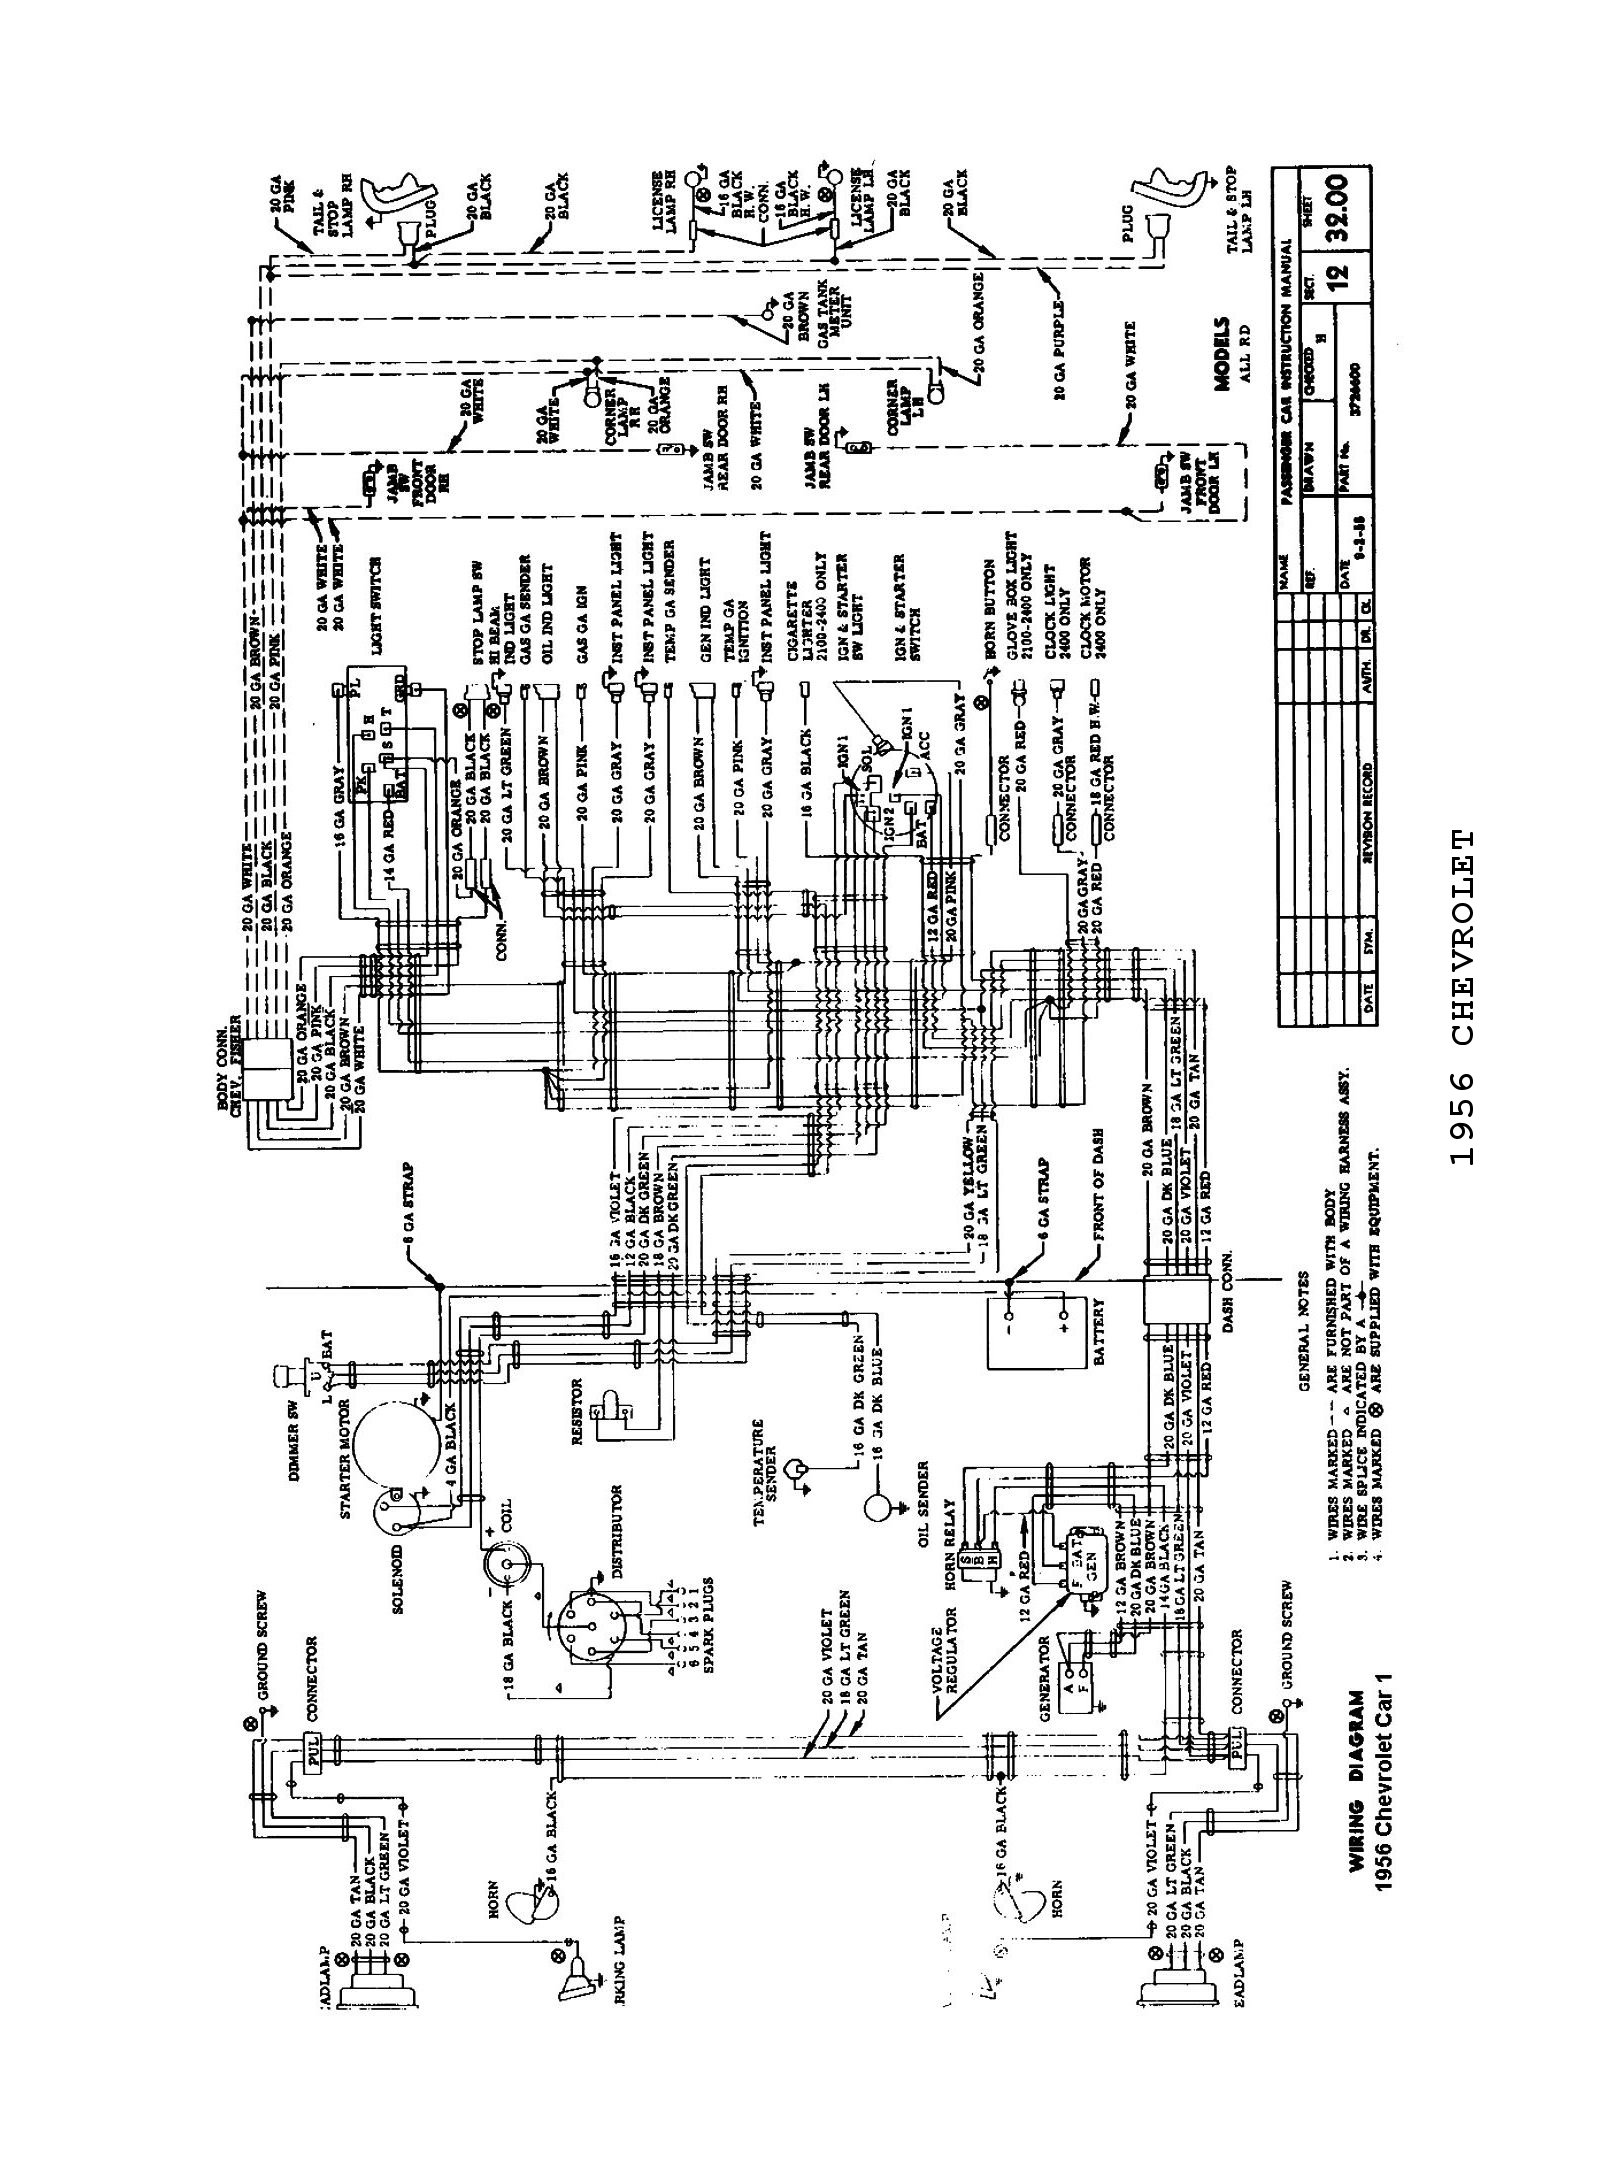 wiring diagram for 1940 chevy truck with 56 Olds Guys Need Wiring Schematics For The Instrument Cluster on 1934 Ford Wiring Schematic as well 55 Chevy Wiring Diagram further 9 Steering Gear E83w 3842 additionally 57 Chevy Belair Wiring Diagram further Jeep Parts M38a1 Wiring Diagram.